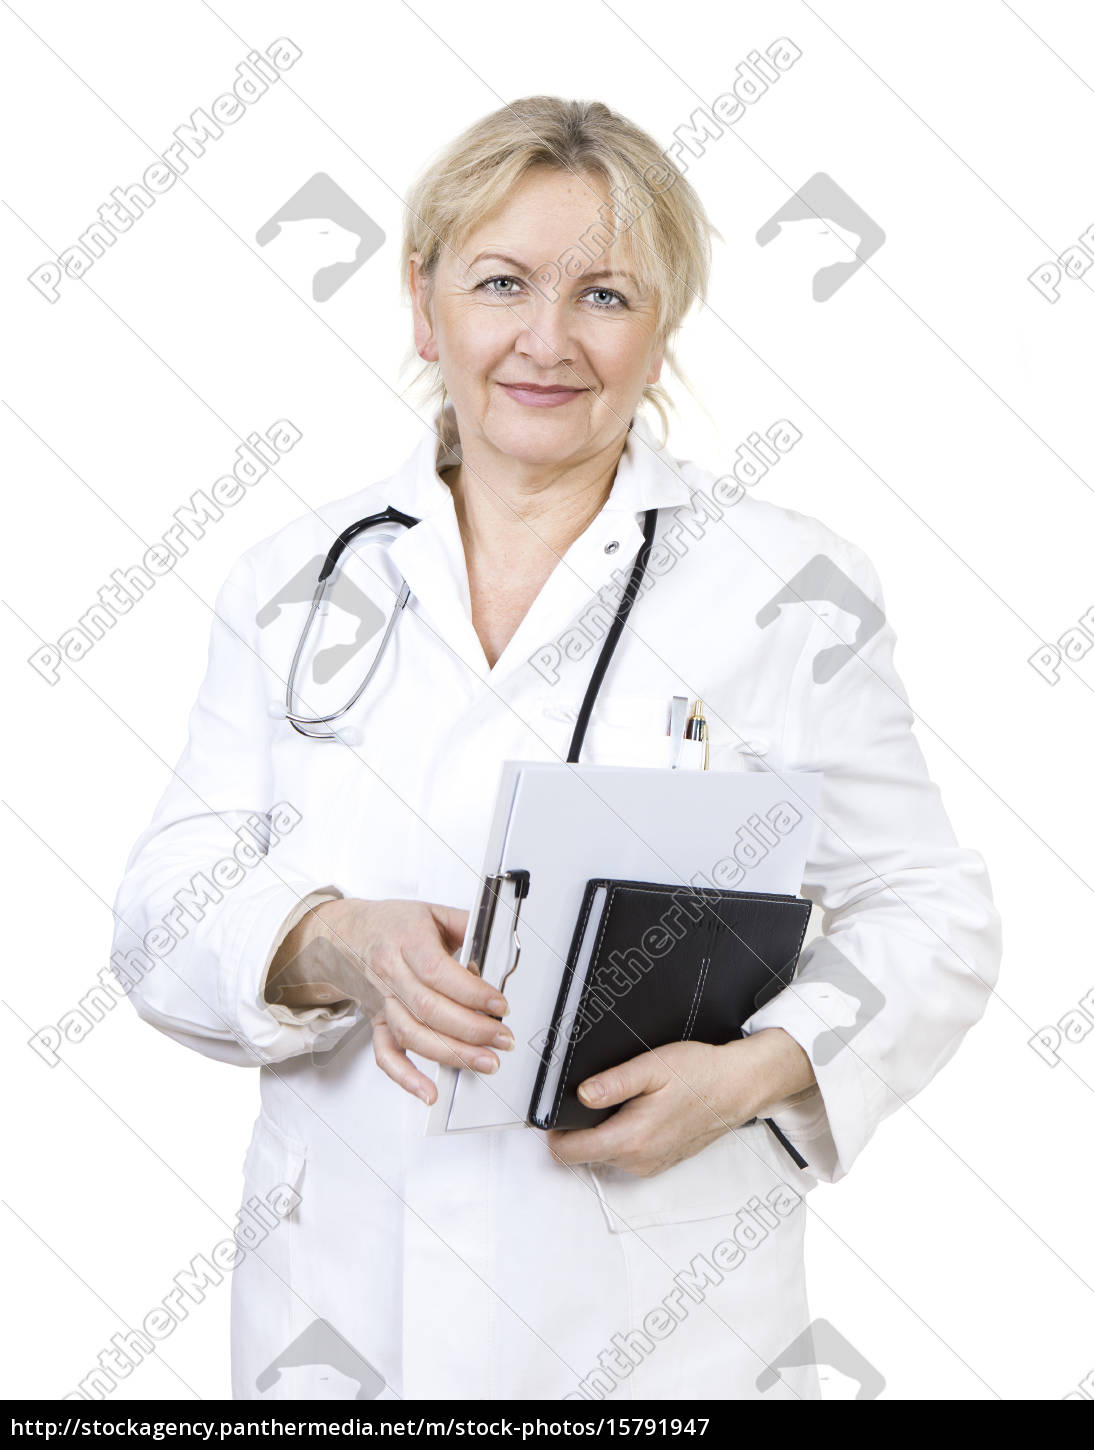 doctor, with, notepad - 15791947